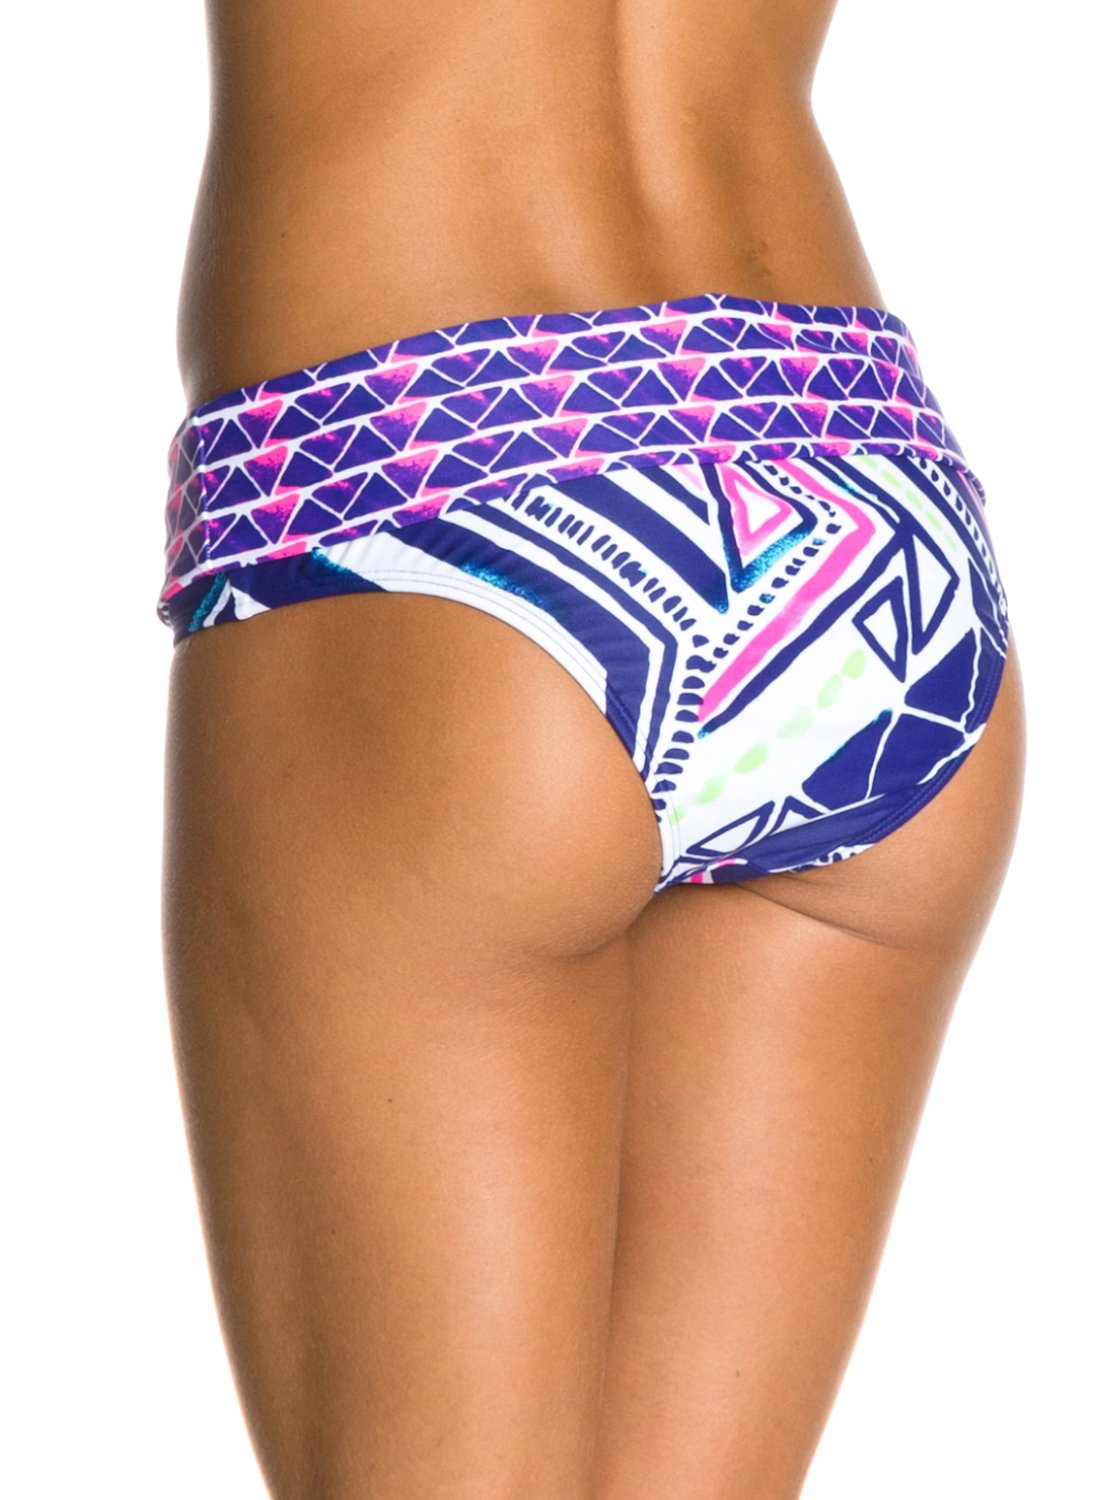 Grab a great deal on bikini bottoms from clearance at Aerie. Find your new favorite bikini bottoms at an amazing price. Free shipping on orders of $50 or more.